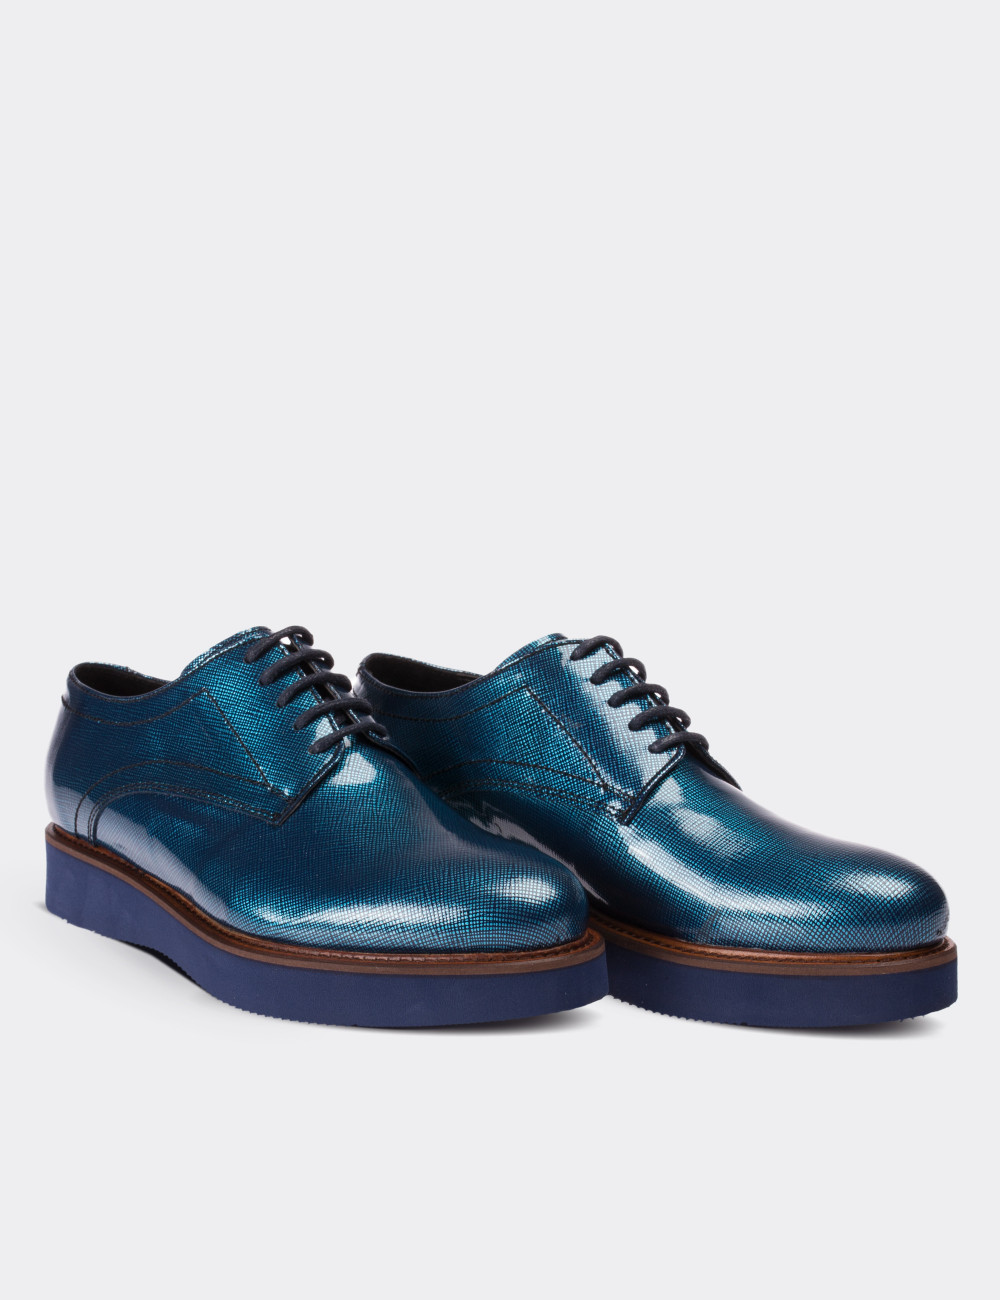 Blue Patent Leather Lace-up Shoes - Deery